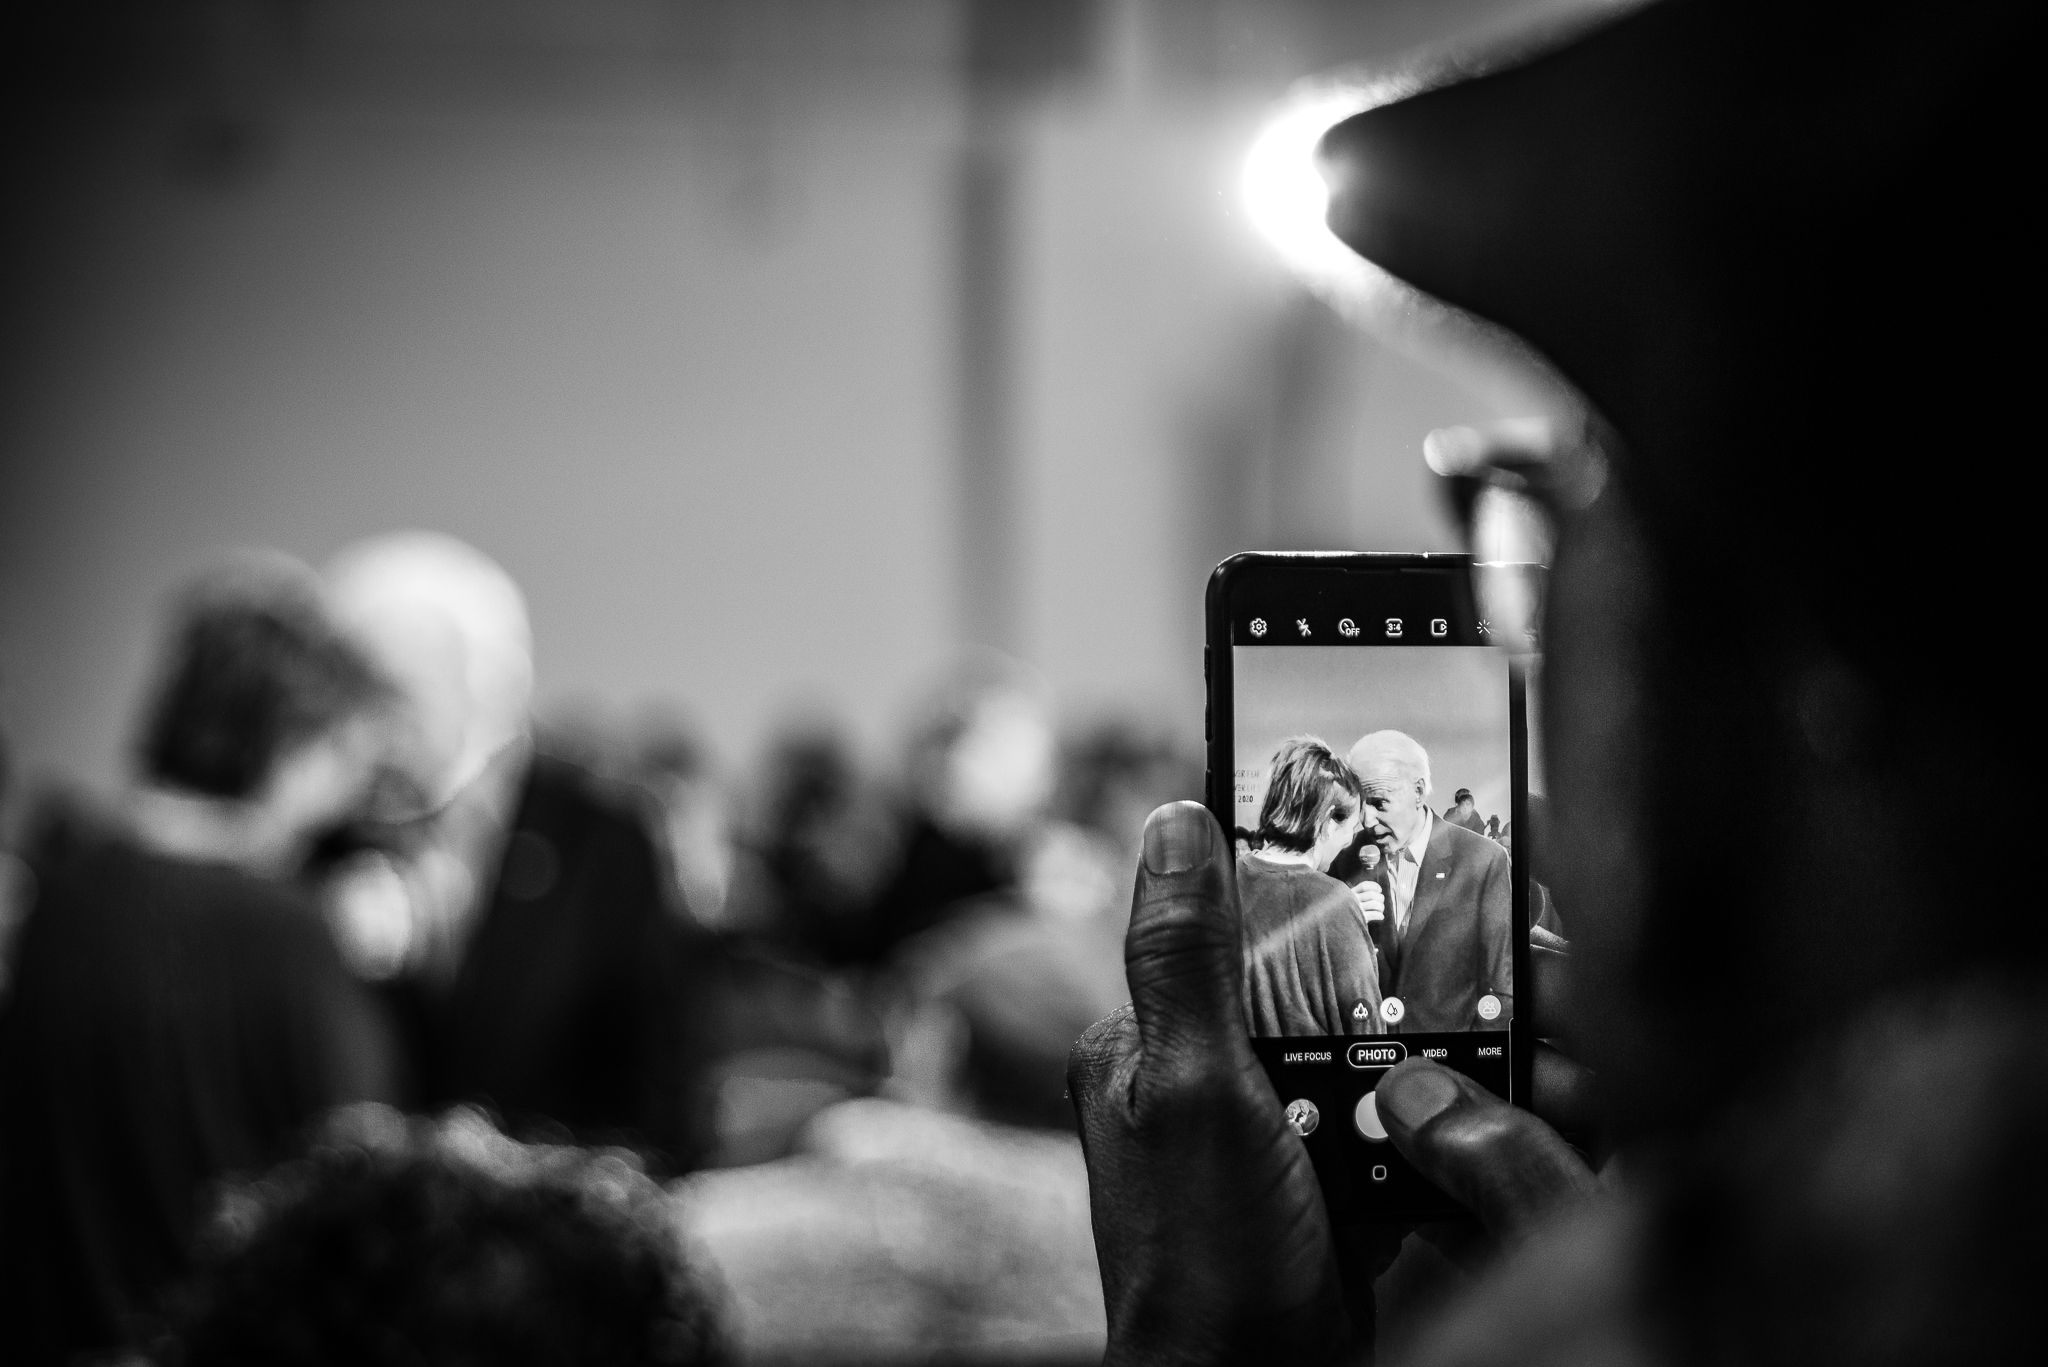 An audience member takes a cell phone photo Joe Biden and Marybeth Berry at a rally in Sumter, South Carolina. February 28, 2020. Photo: Lance Monotone.